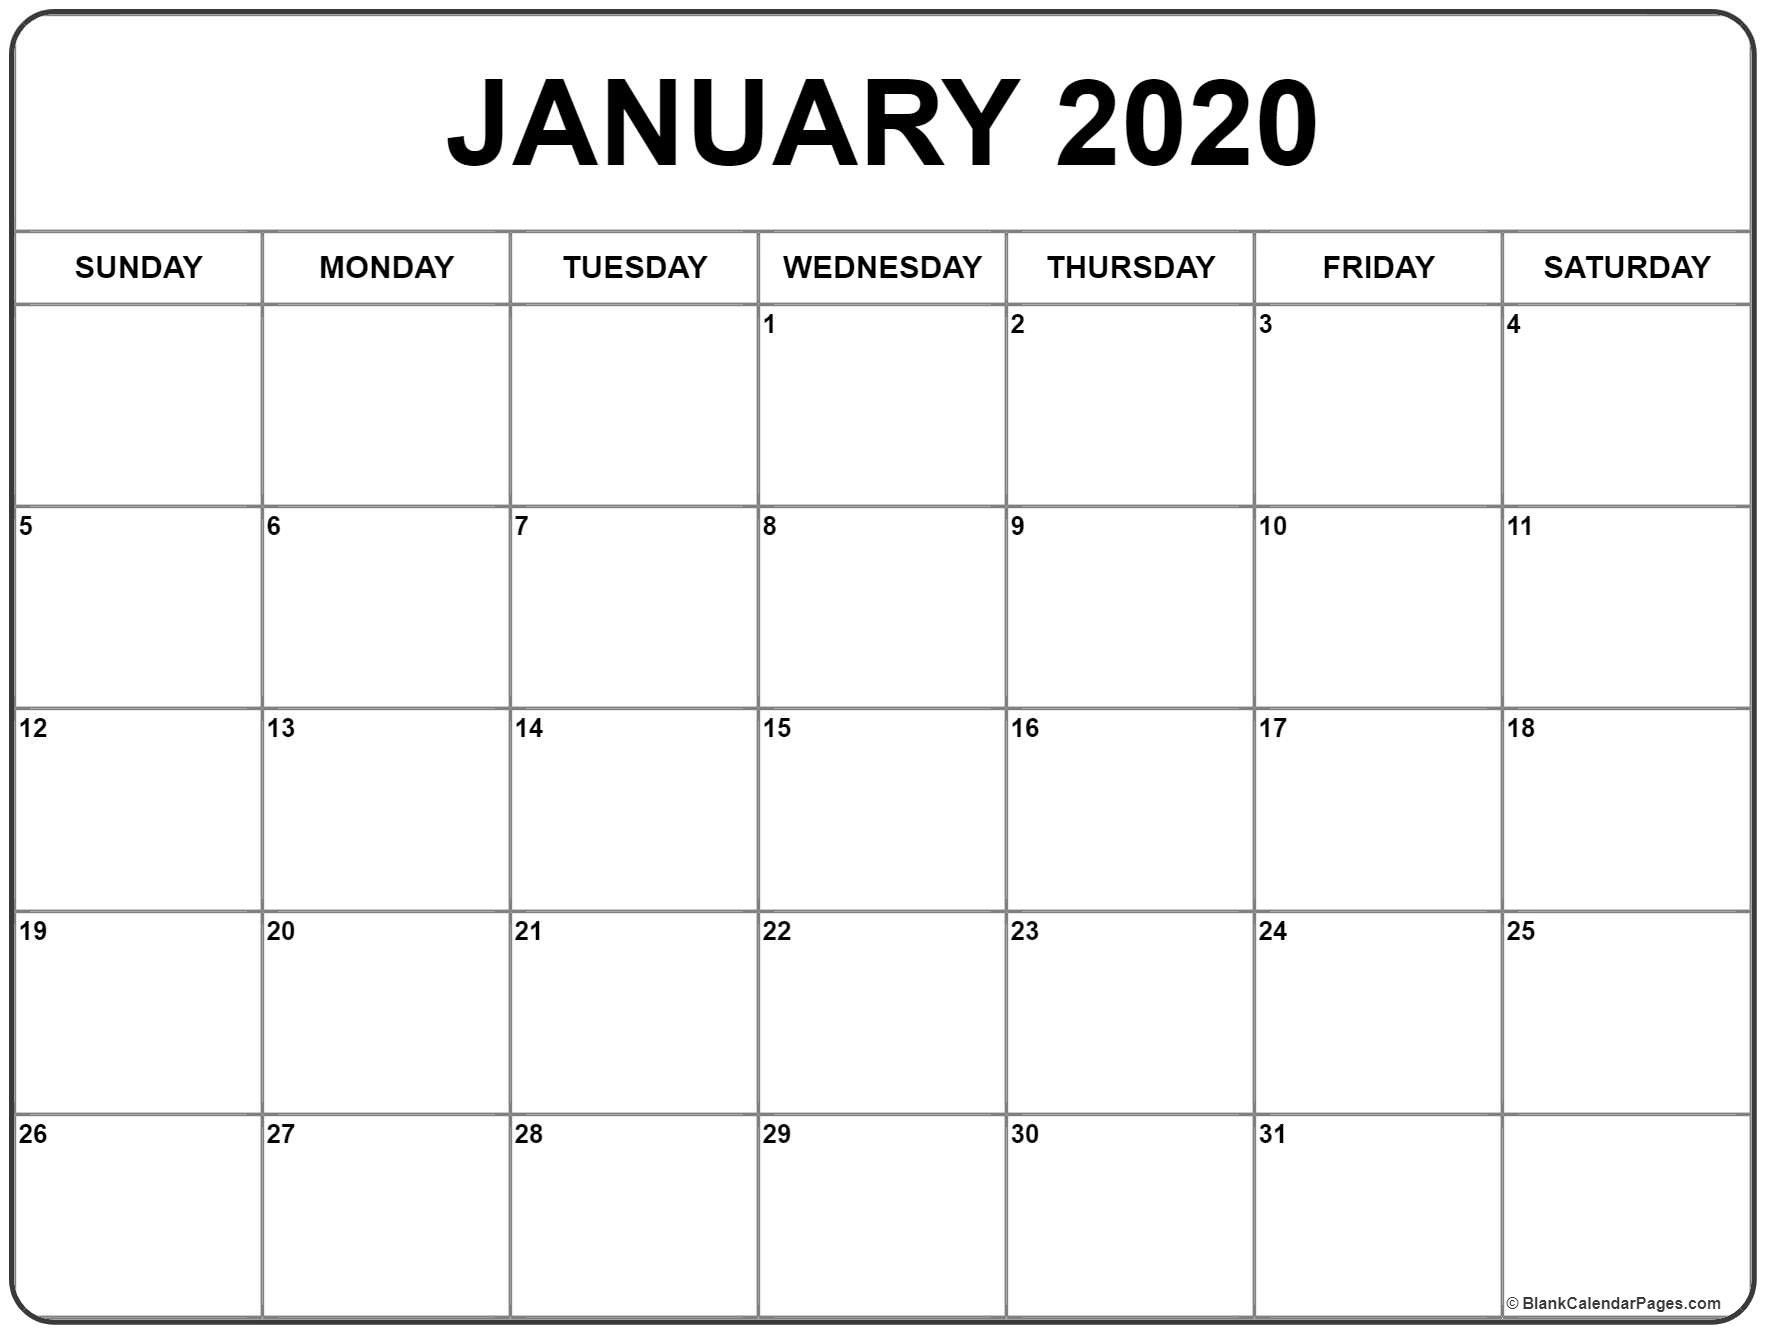 January 2020 Calendar 56 Templates Of 2020 Printable January